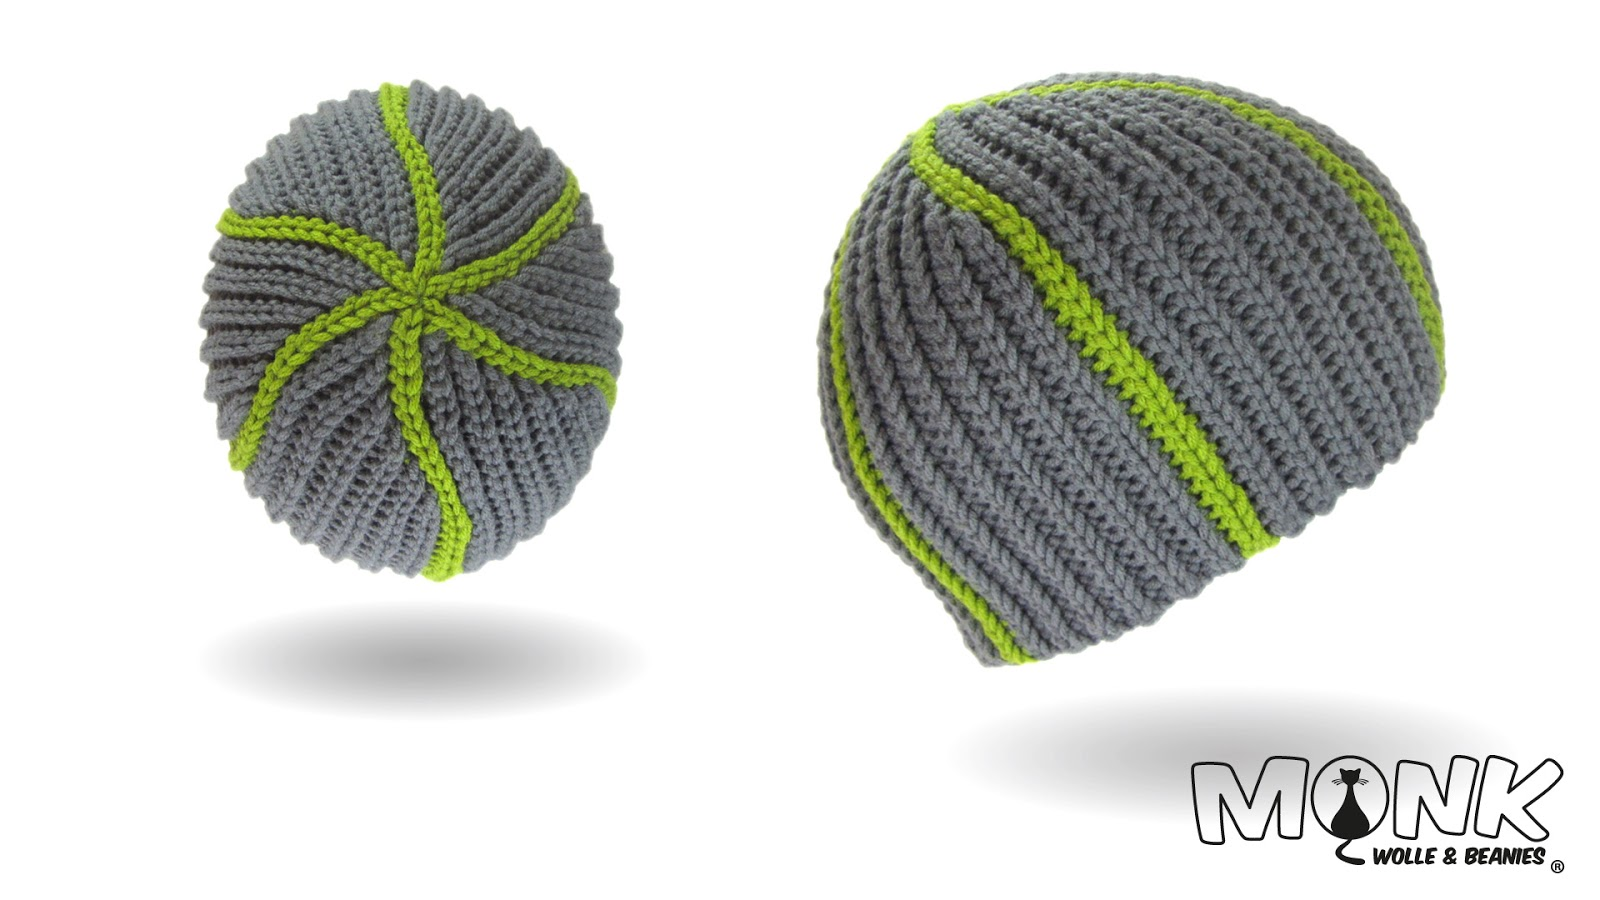 Monk Wolle Beanies 2016